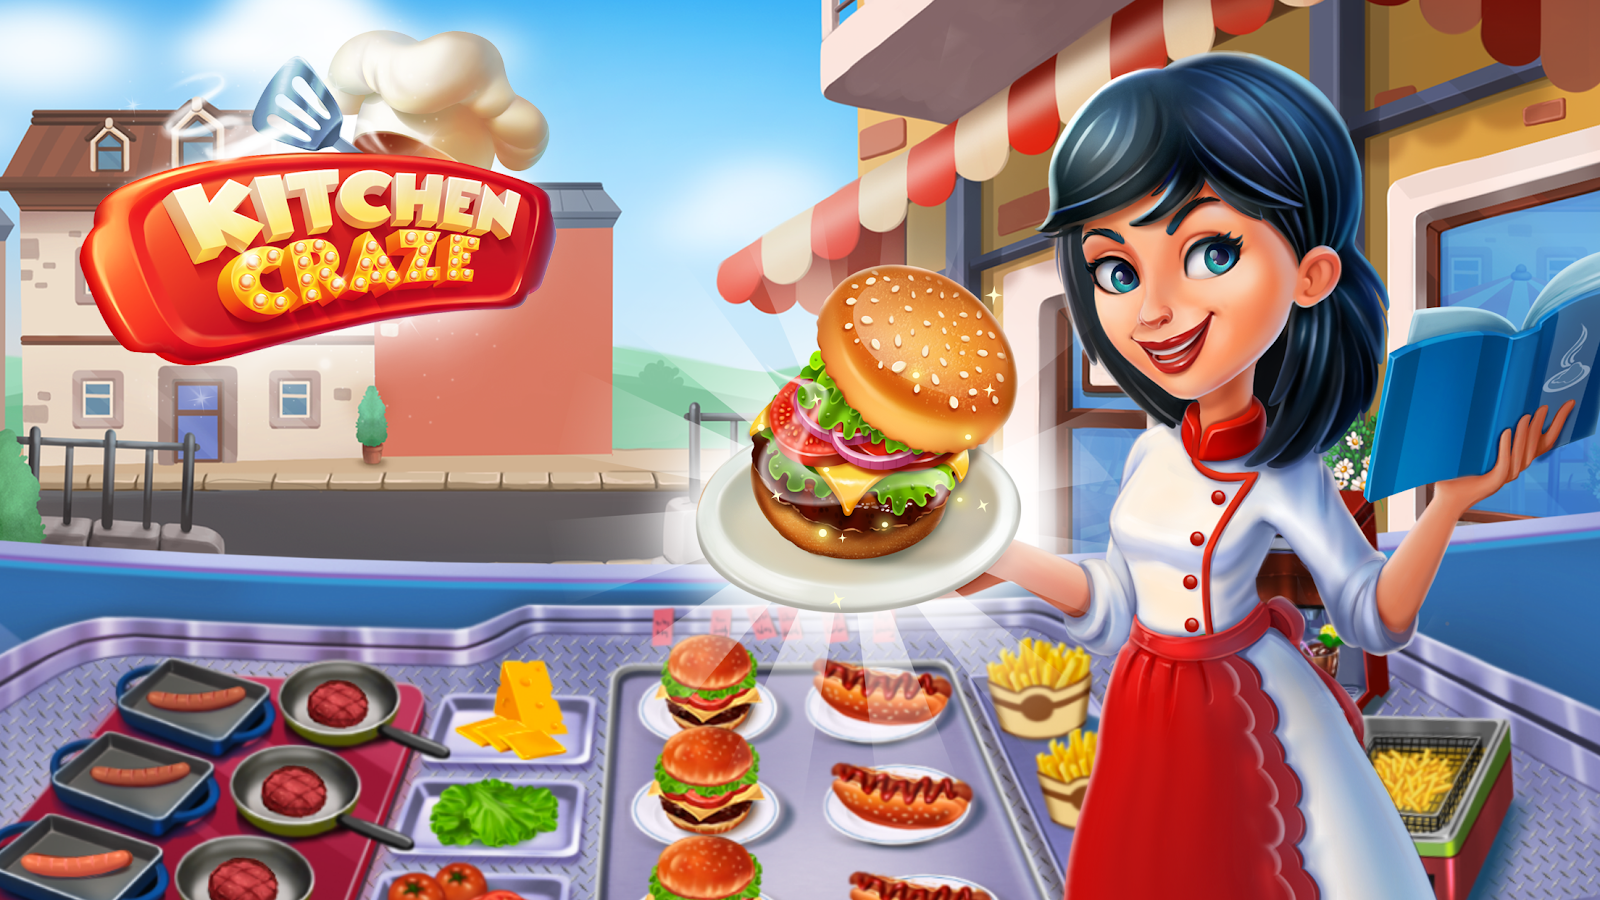 Kitchen craze master chef cooking game 1 7 6 screenshot 1